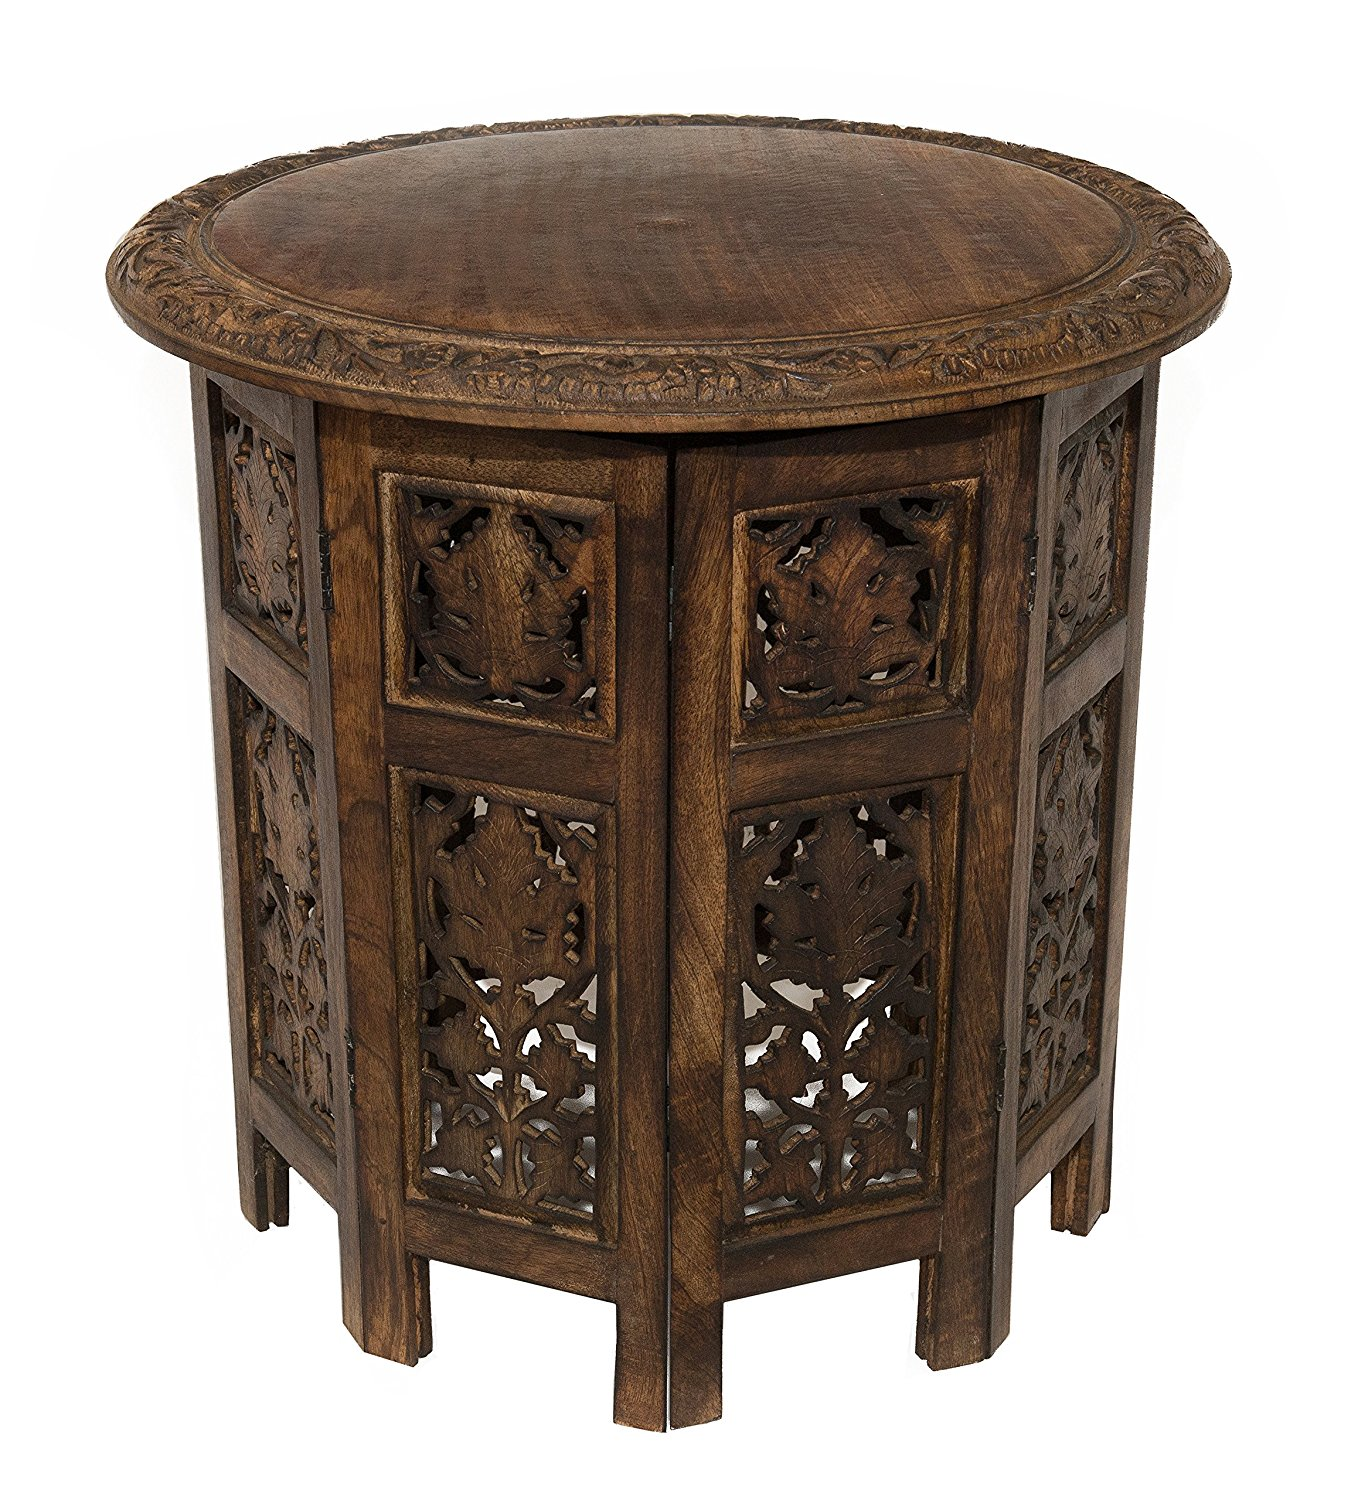 the terrific cool style end table mira road furniture round accent unique tables side coffee square covers bedside luxury dining room bookshelf espresso extra tall lamps hidden